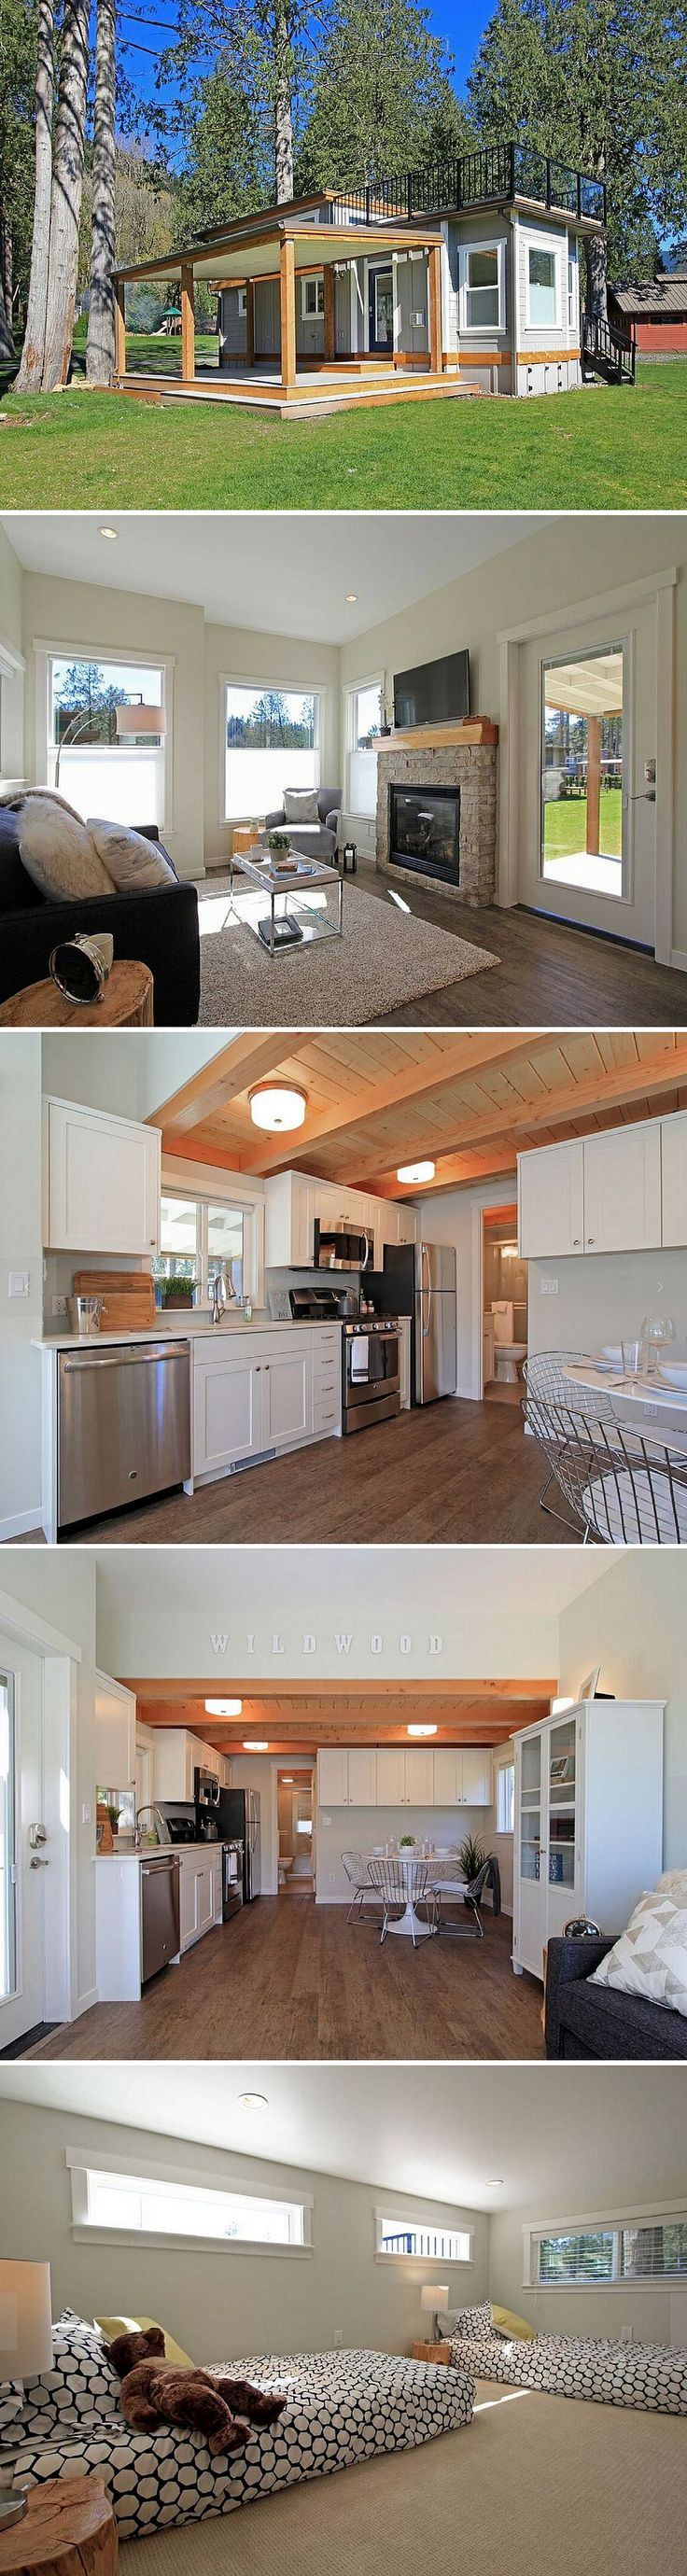 best 25 tiny house design ideas on pinterest tiny houses tiny